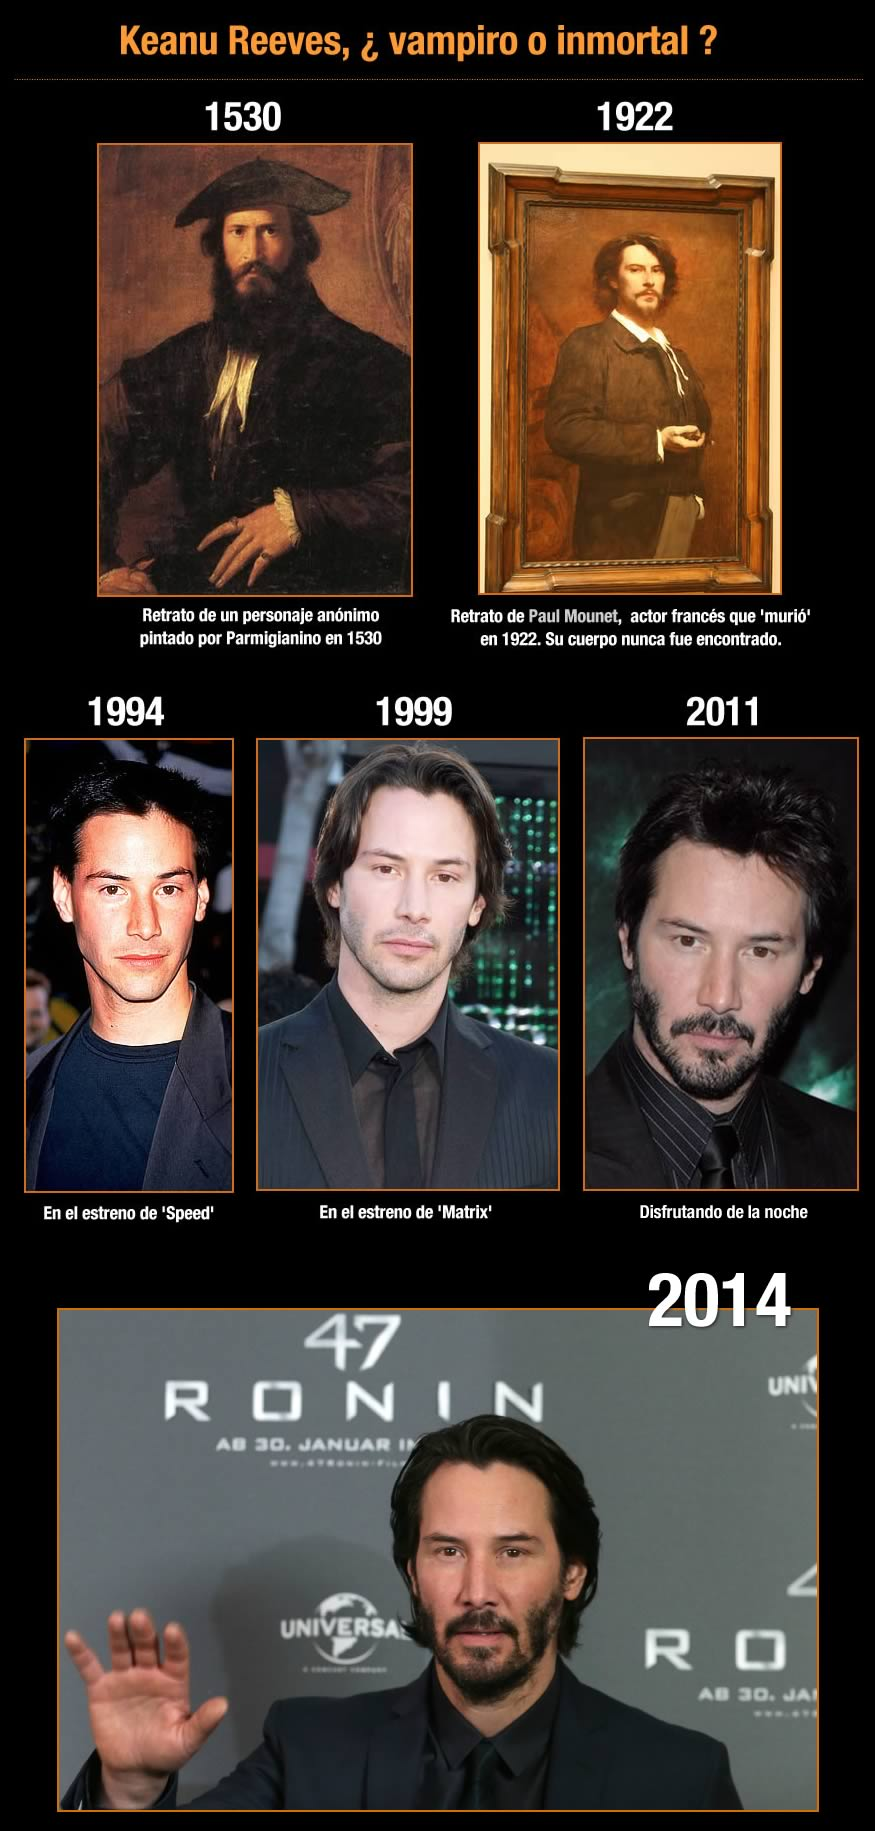 keanu-reeves-inmortal